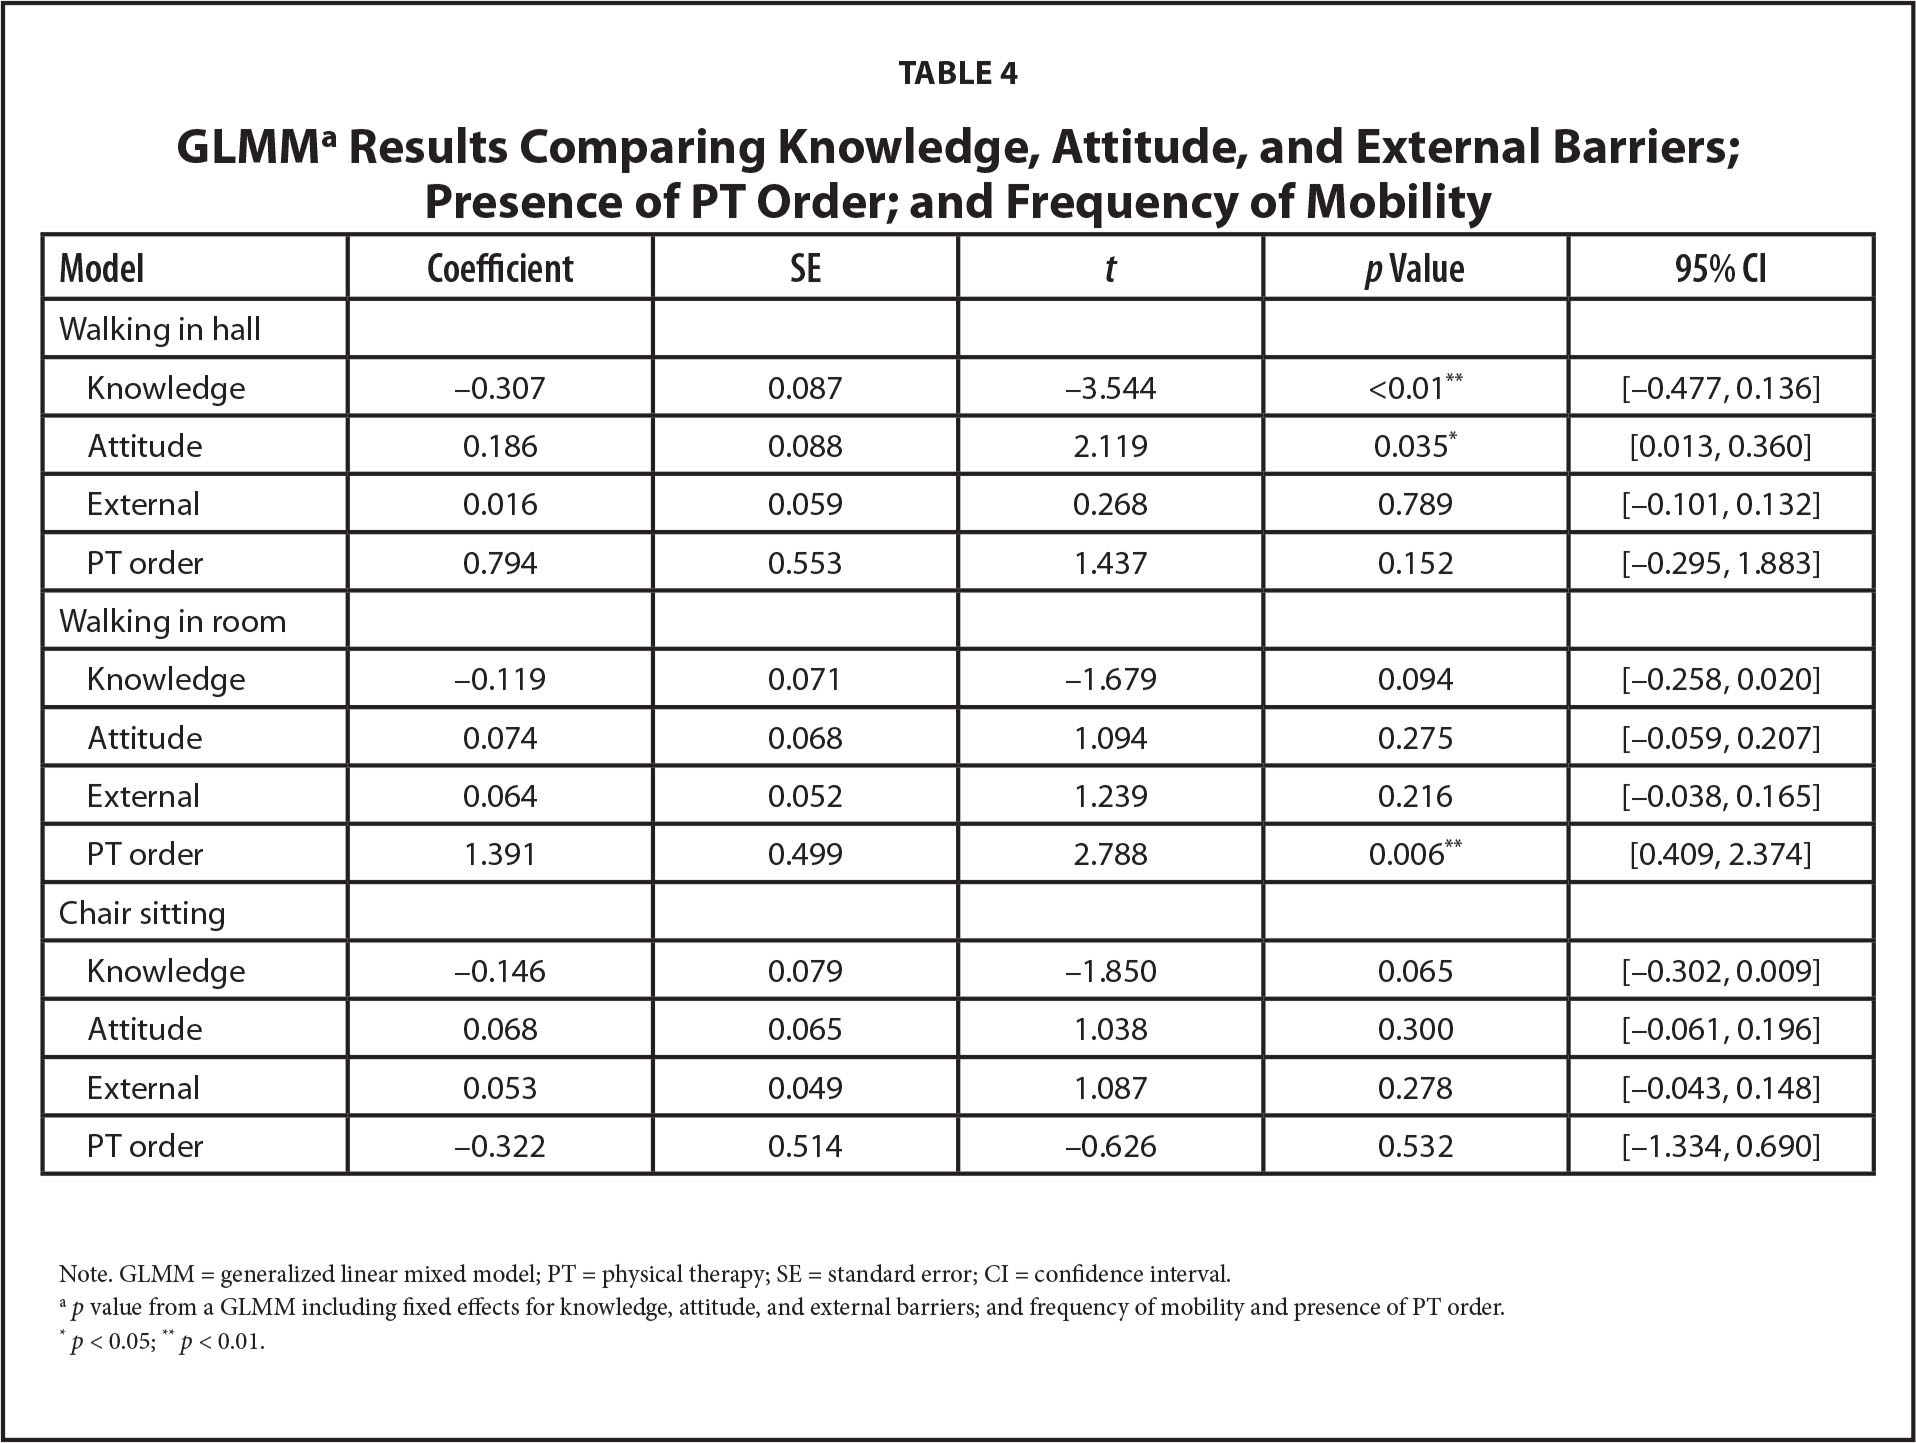 GLMMa Results Comparing Knowledge, Attitude, and External Barriers; Presence of PT Order; and Frequency of Mobility